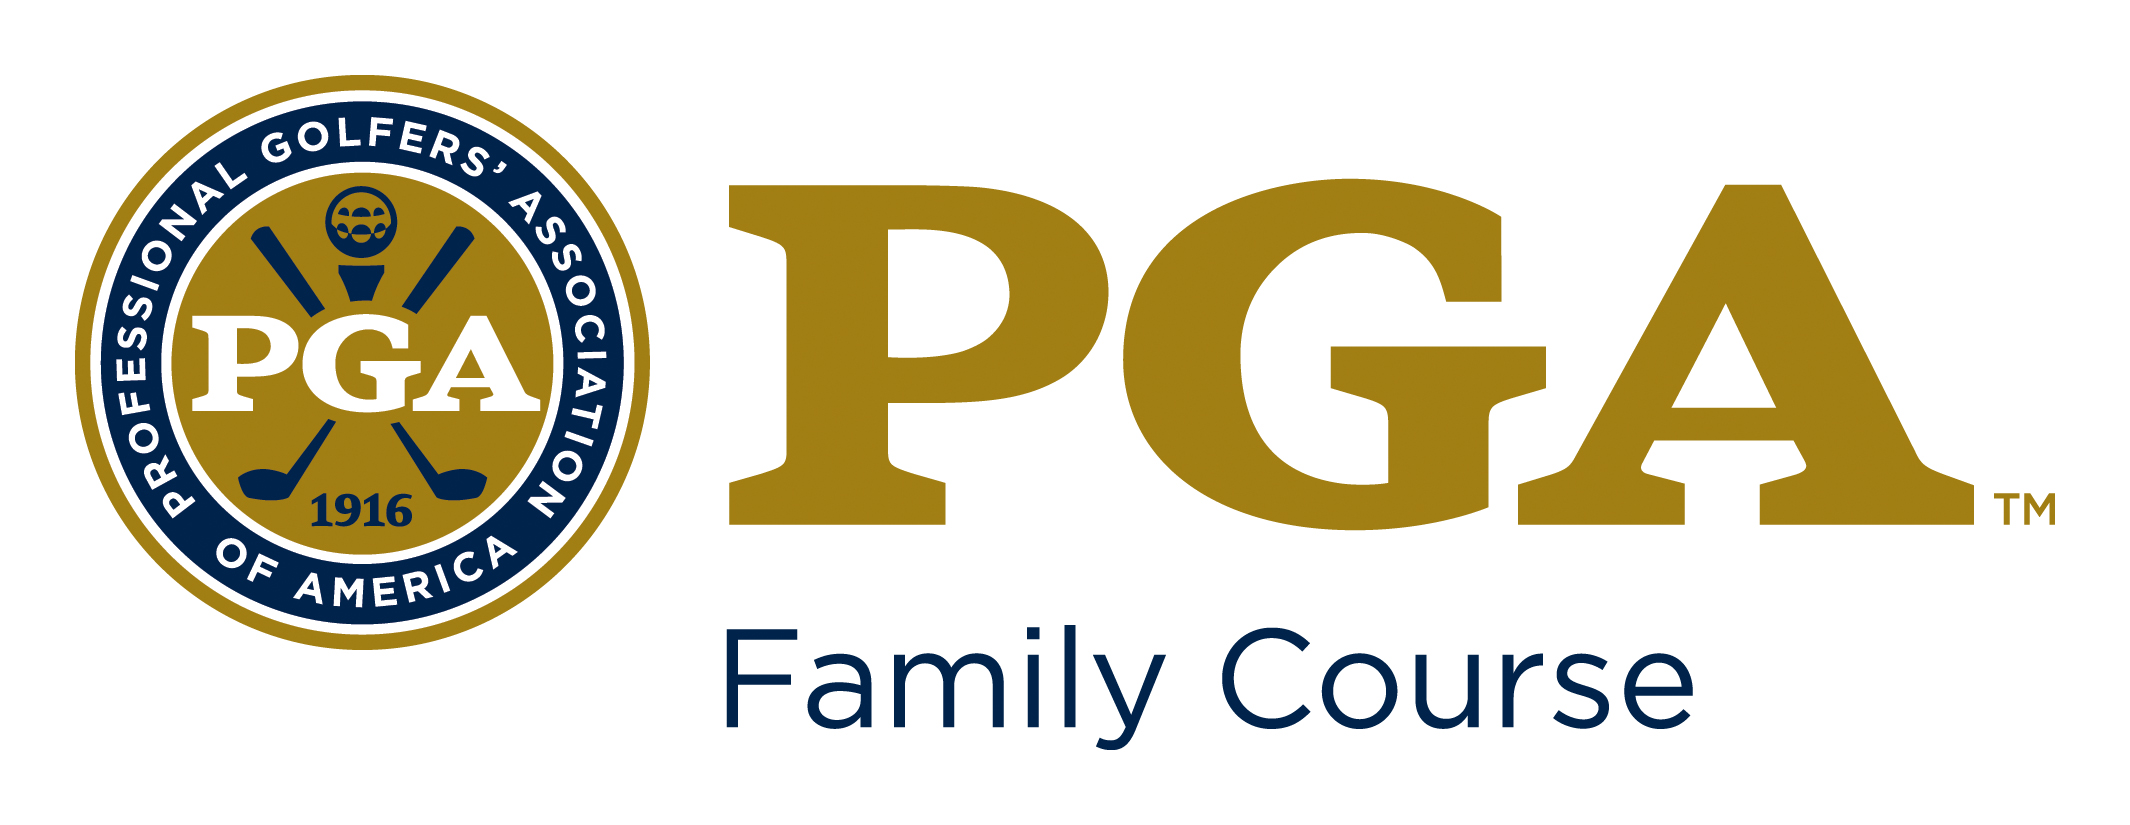 PGA Family Course Logo